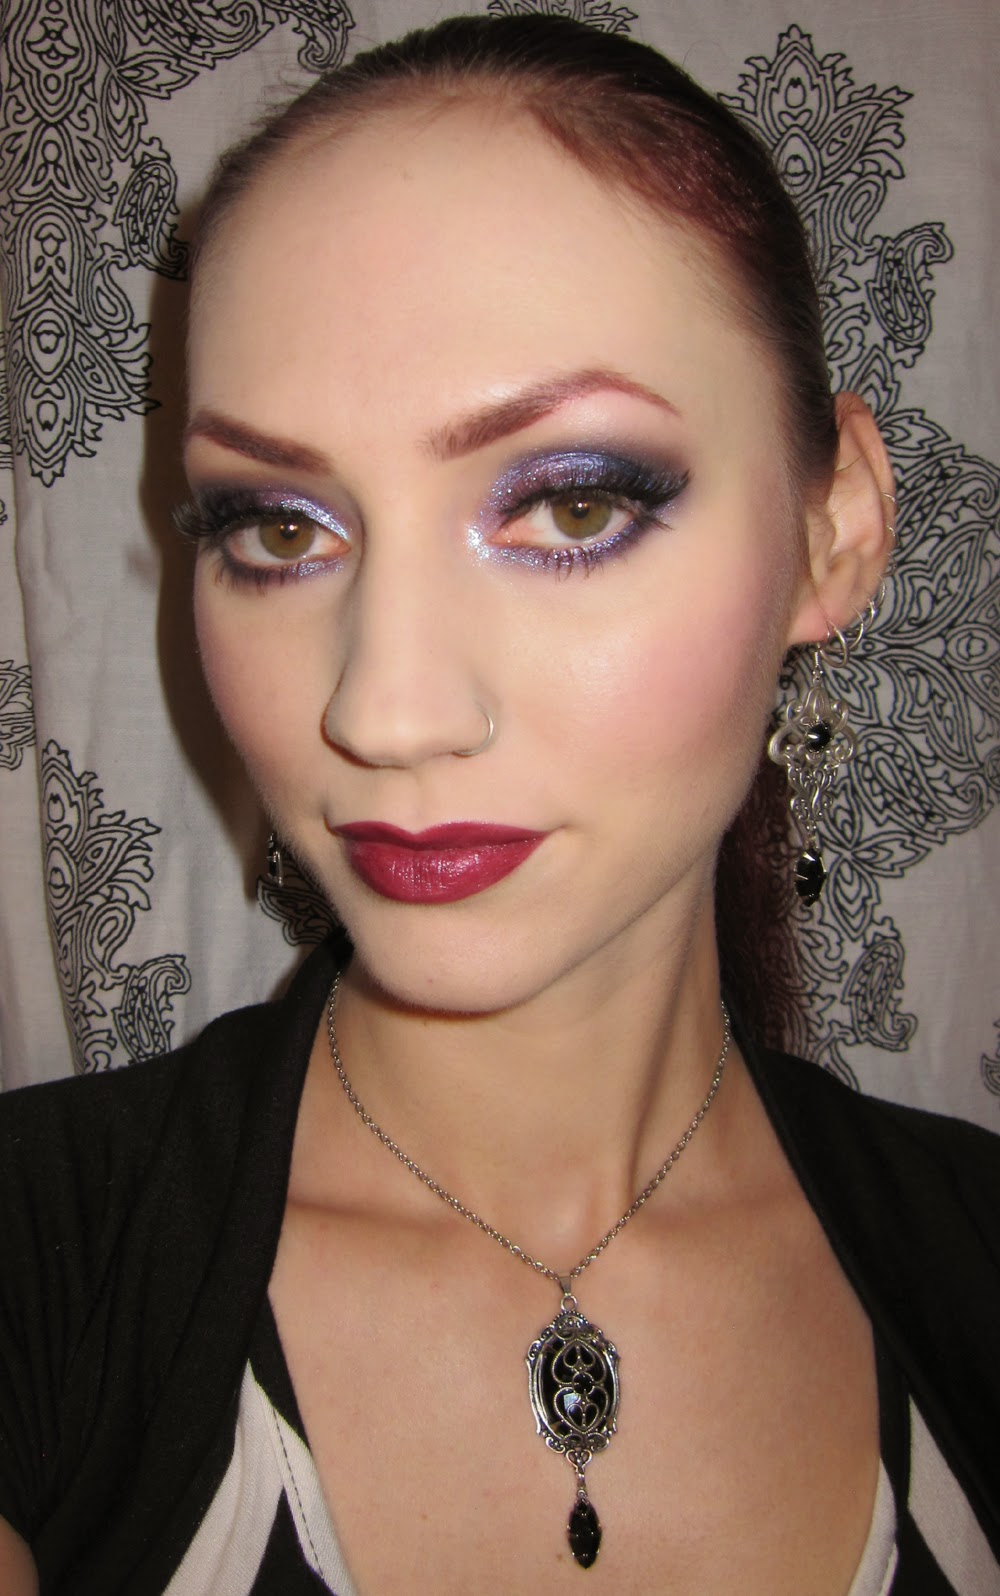 http://themoonmaiden-blix.blogspot.com/2014/11/plum-and-dark-blue-eye-makeup-look.html